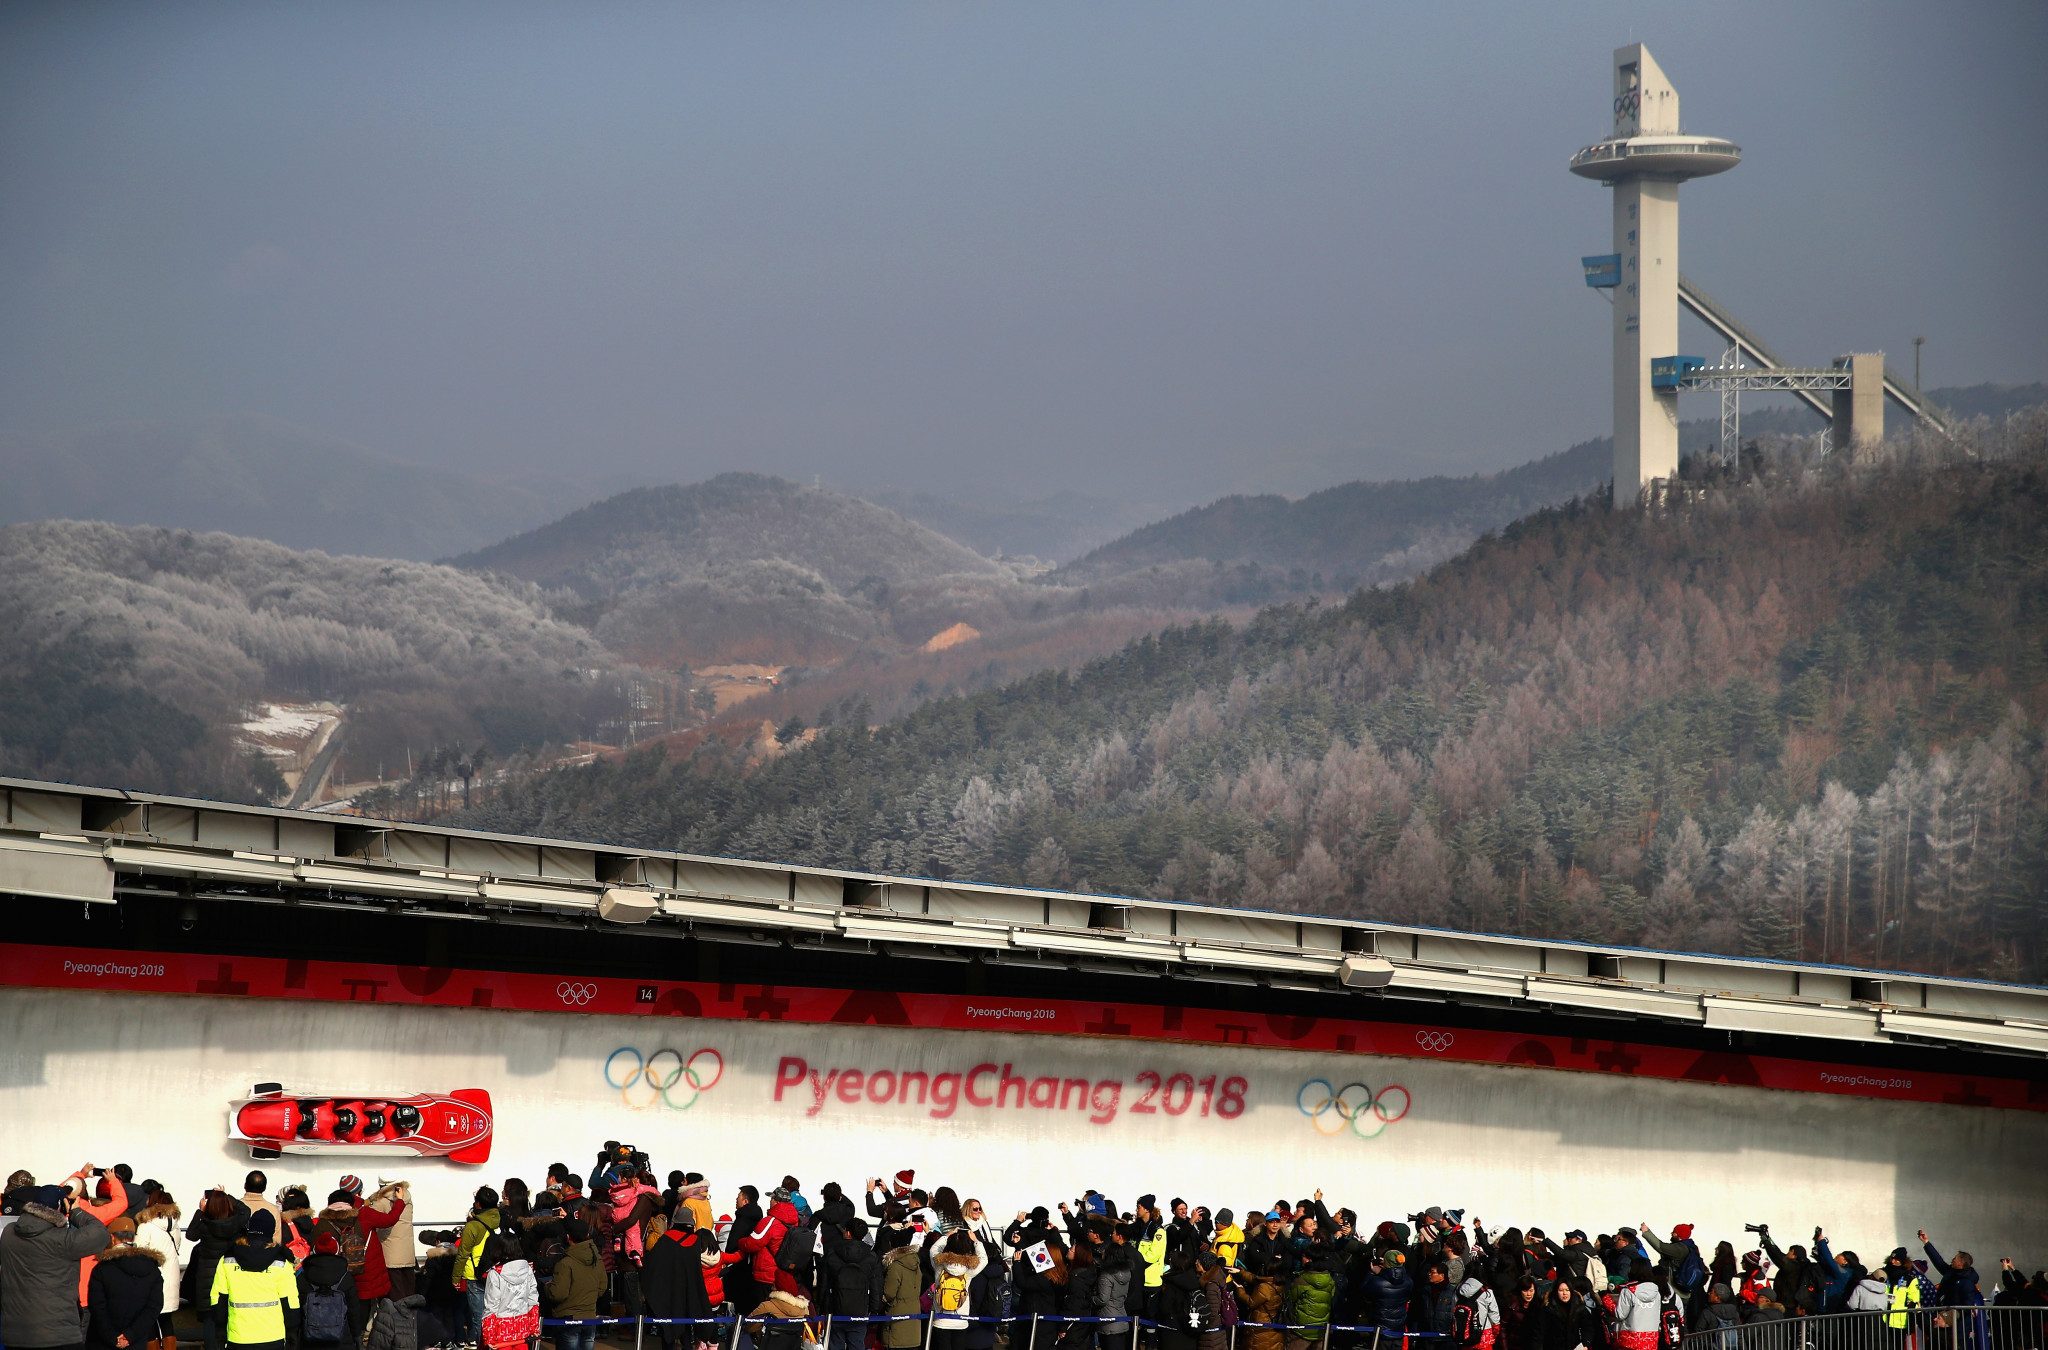 Pyeongchang hosted the Winter Olympics in 2018 but has not hosted a World Cup event since ©Getty Images